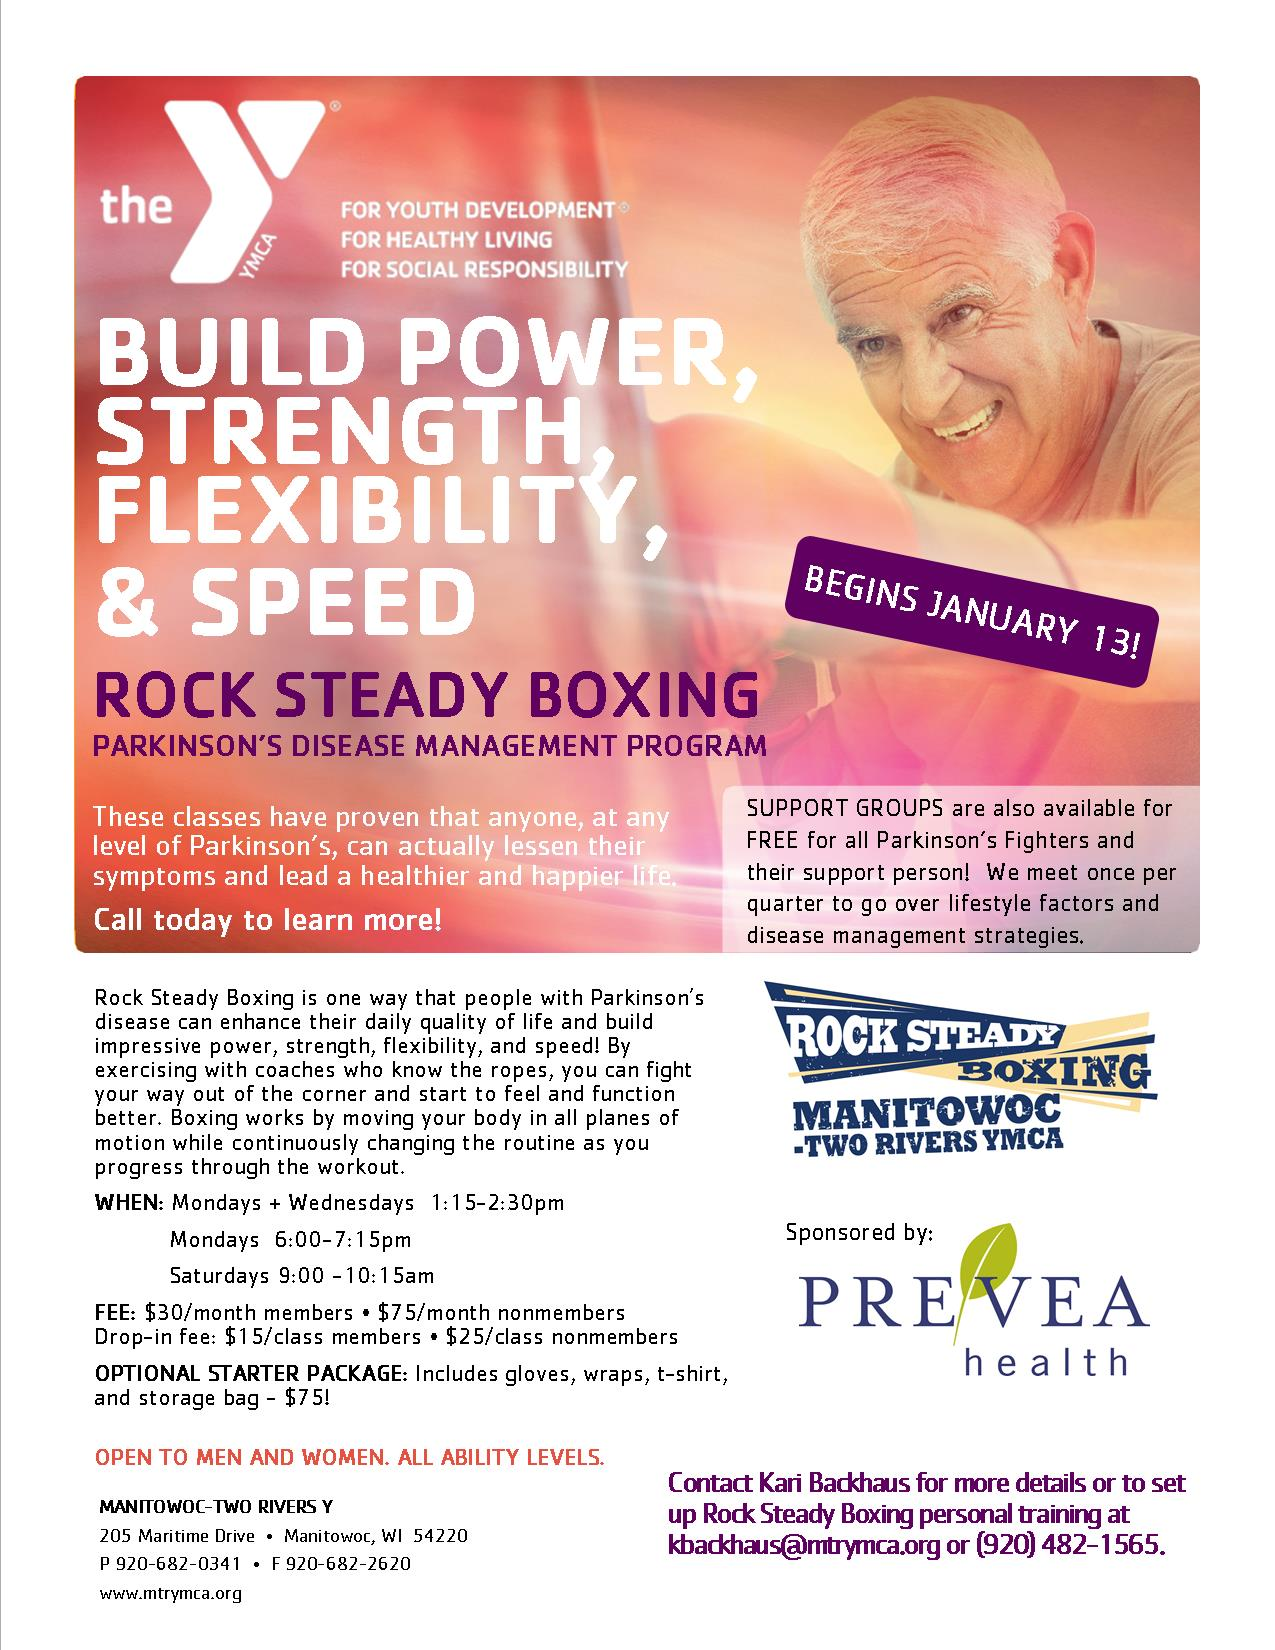 http://www.mtrymca.org/sites/mtrymca.org/assets/images/programs/Rock-Steady-Boxing-Flyer.jpg